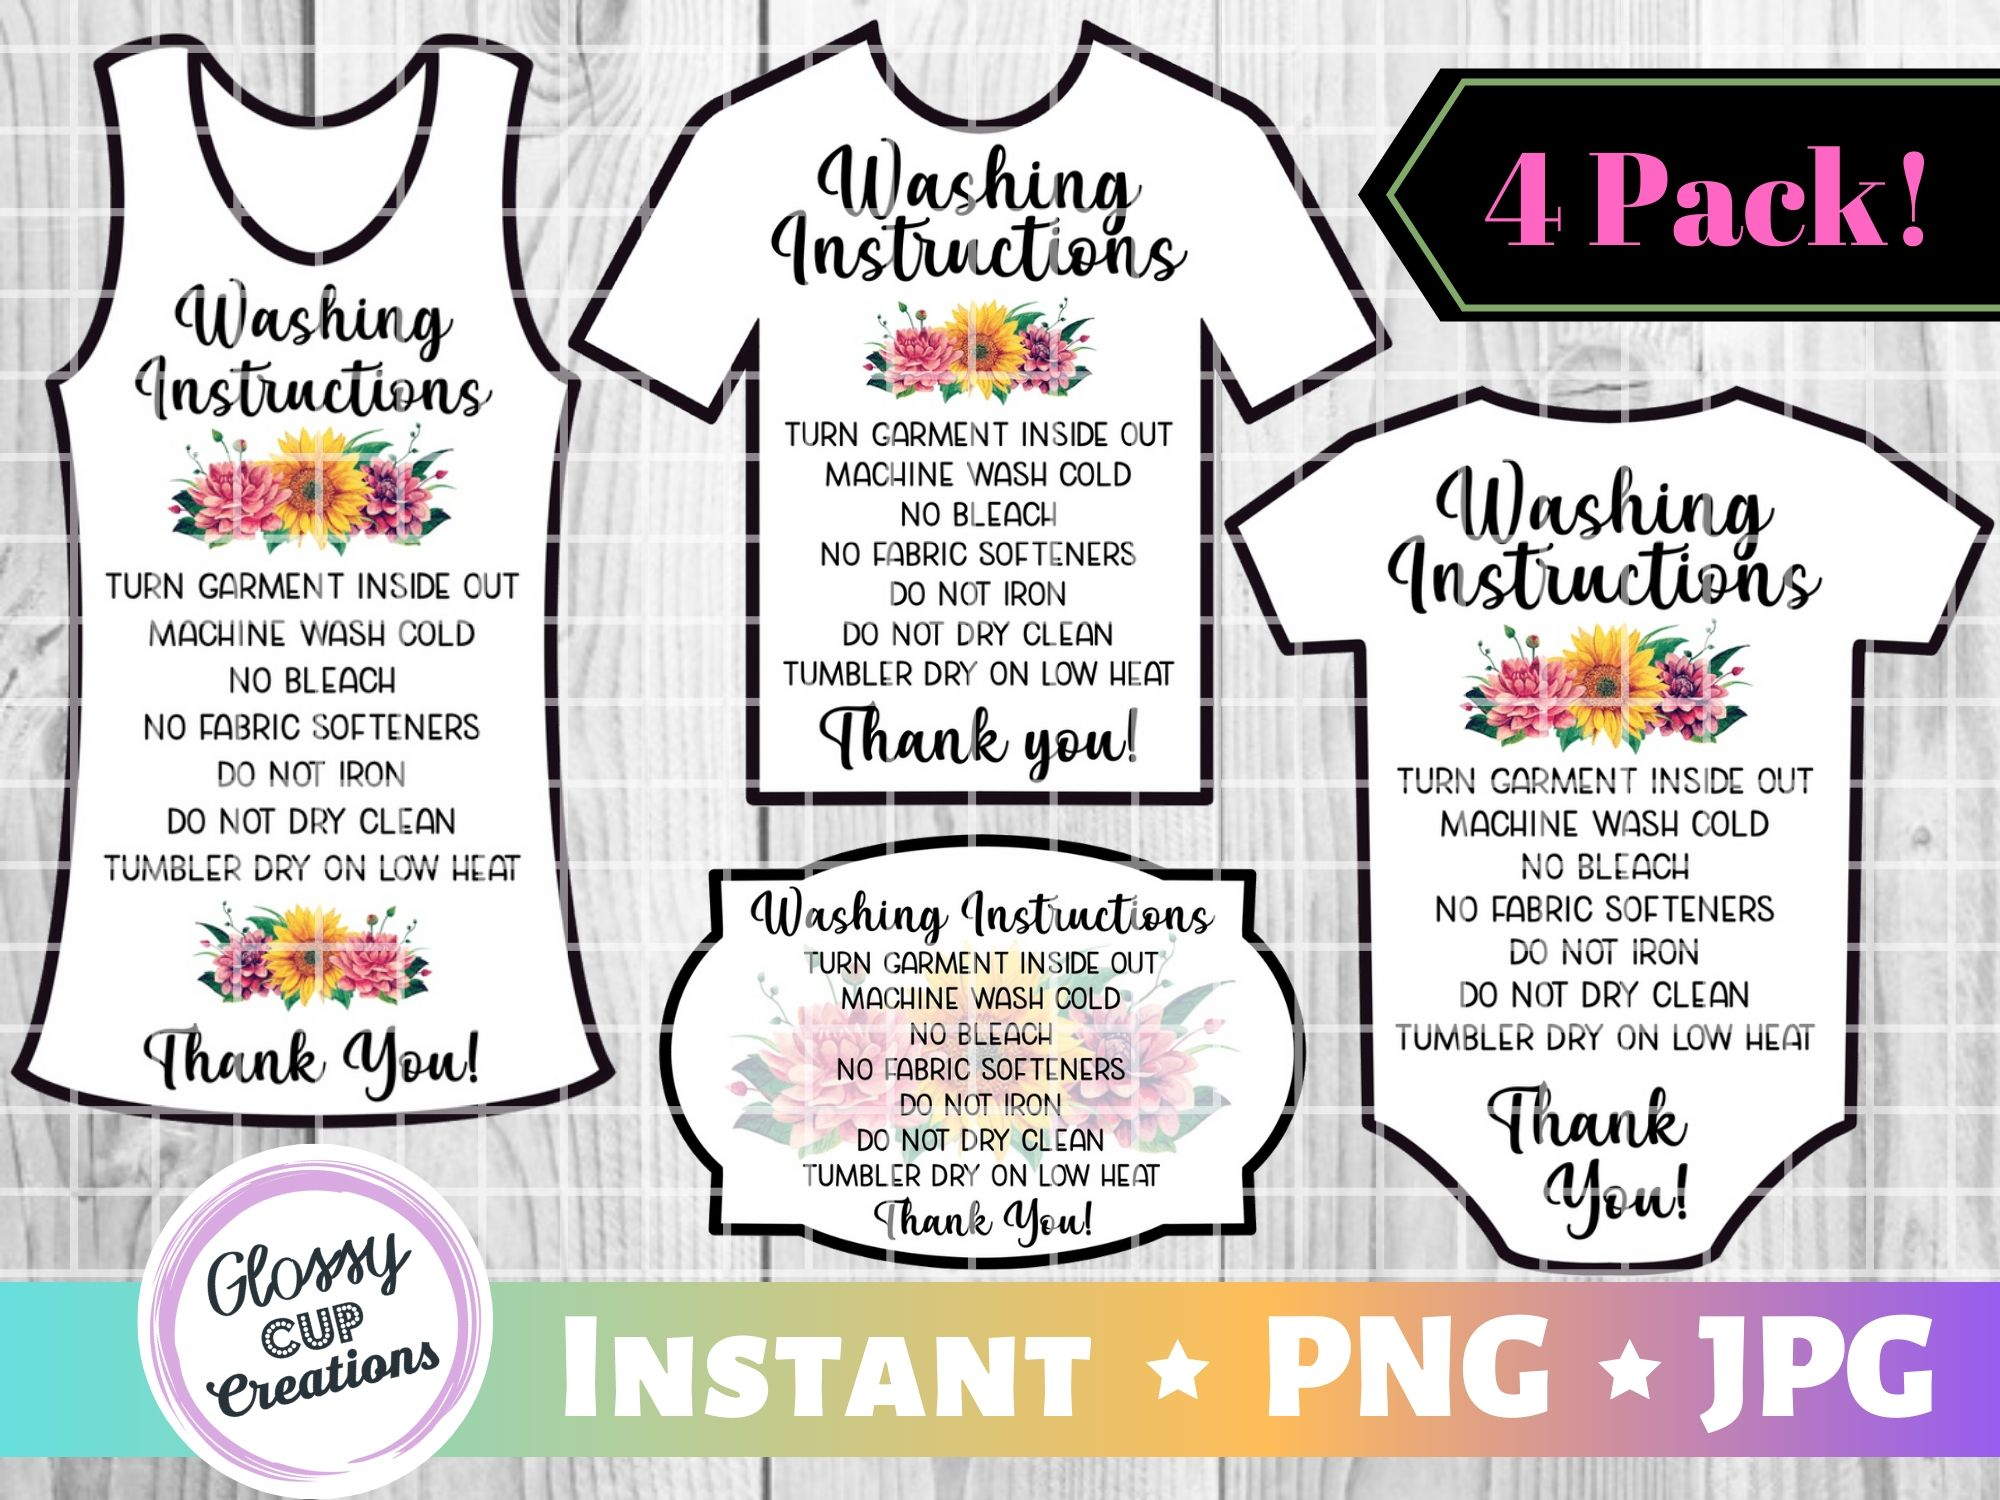 Download Free Garment Care Cards Floral Graphic By Suzannecornejo Creative for Cricut Explore, Silhouette and other cutting machines.